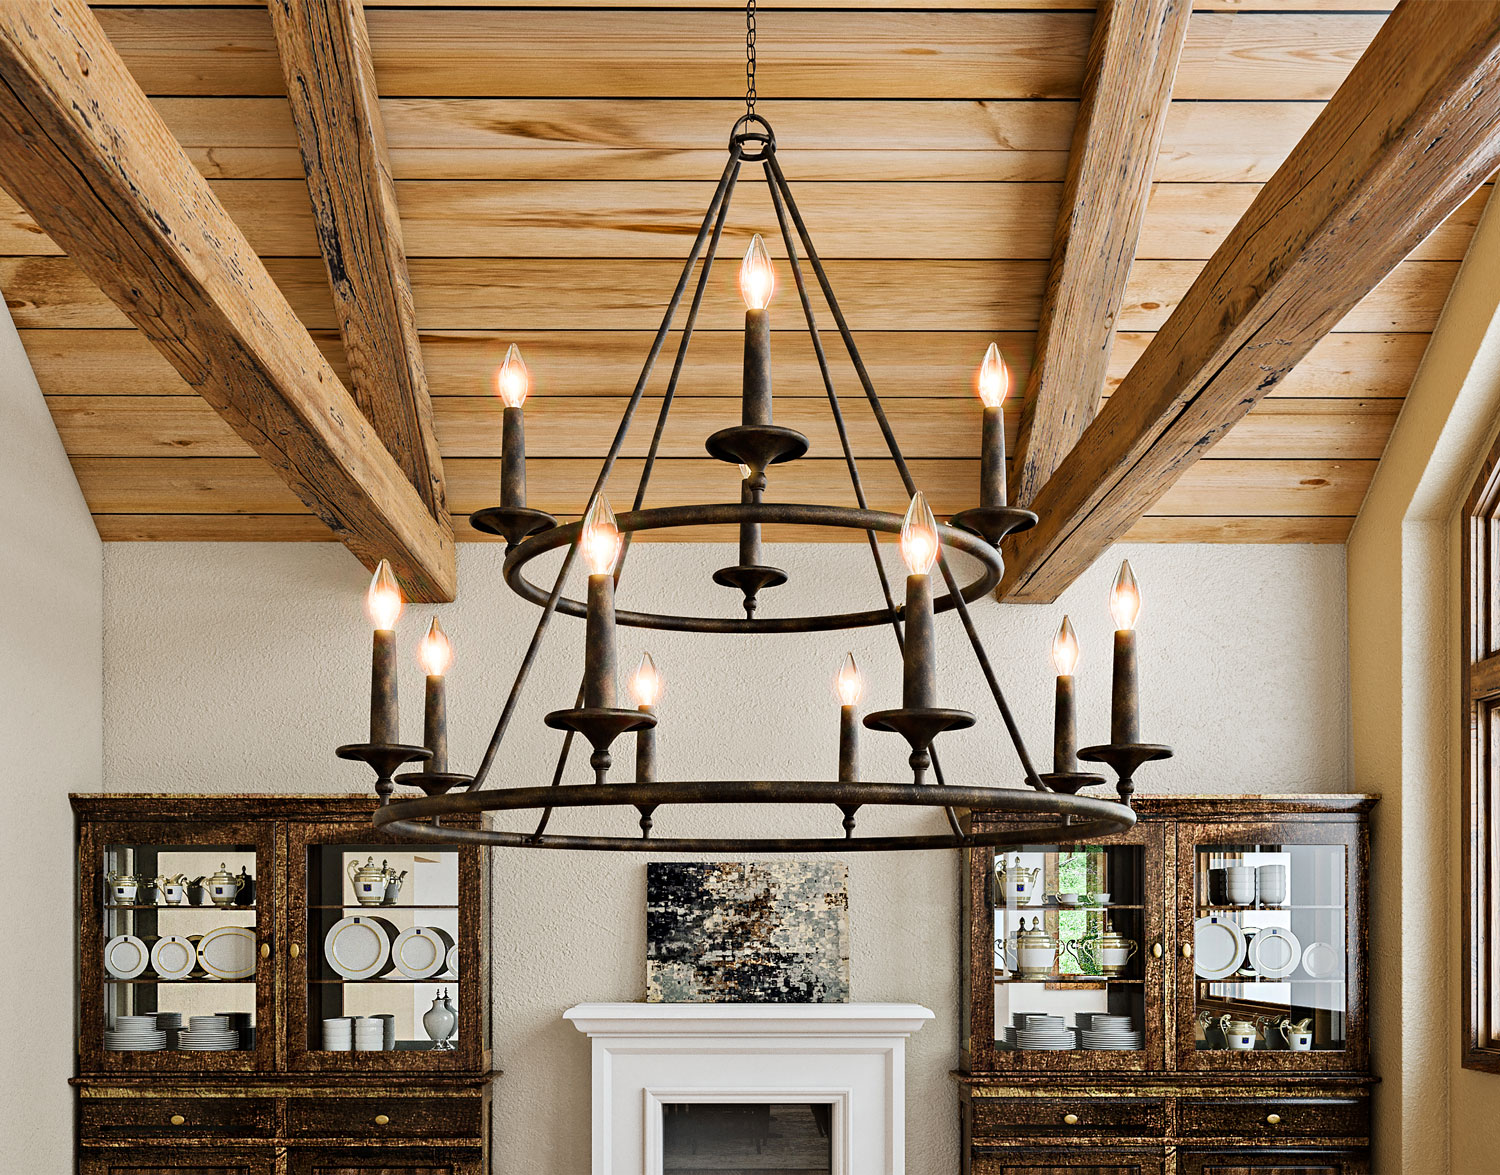 The Quoizel S Tiered Voyager Chandelier Composed Of Hand Forged Iron In A Bronze Finish Influenced By Moorish Spanish And Gothic Styles Fixture